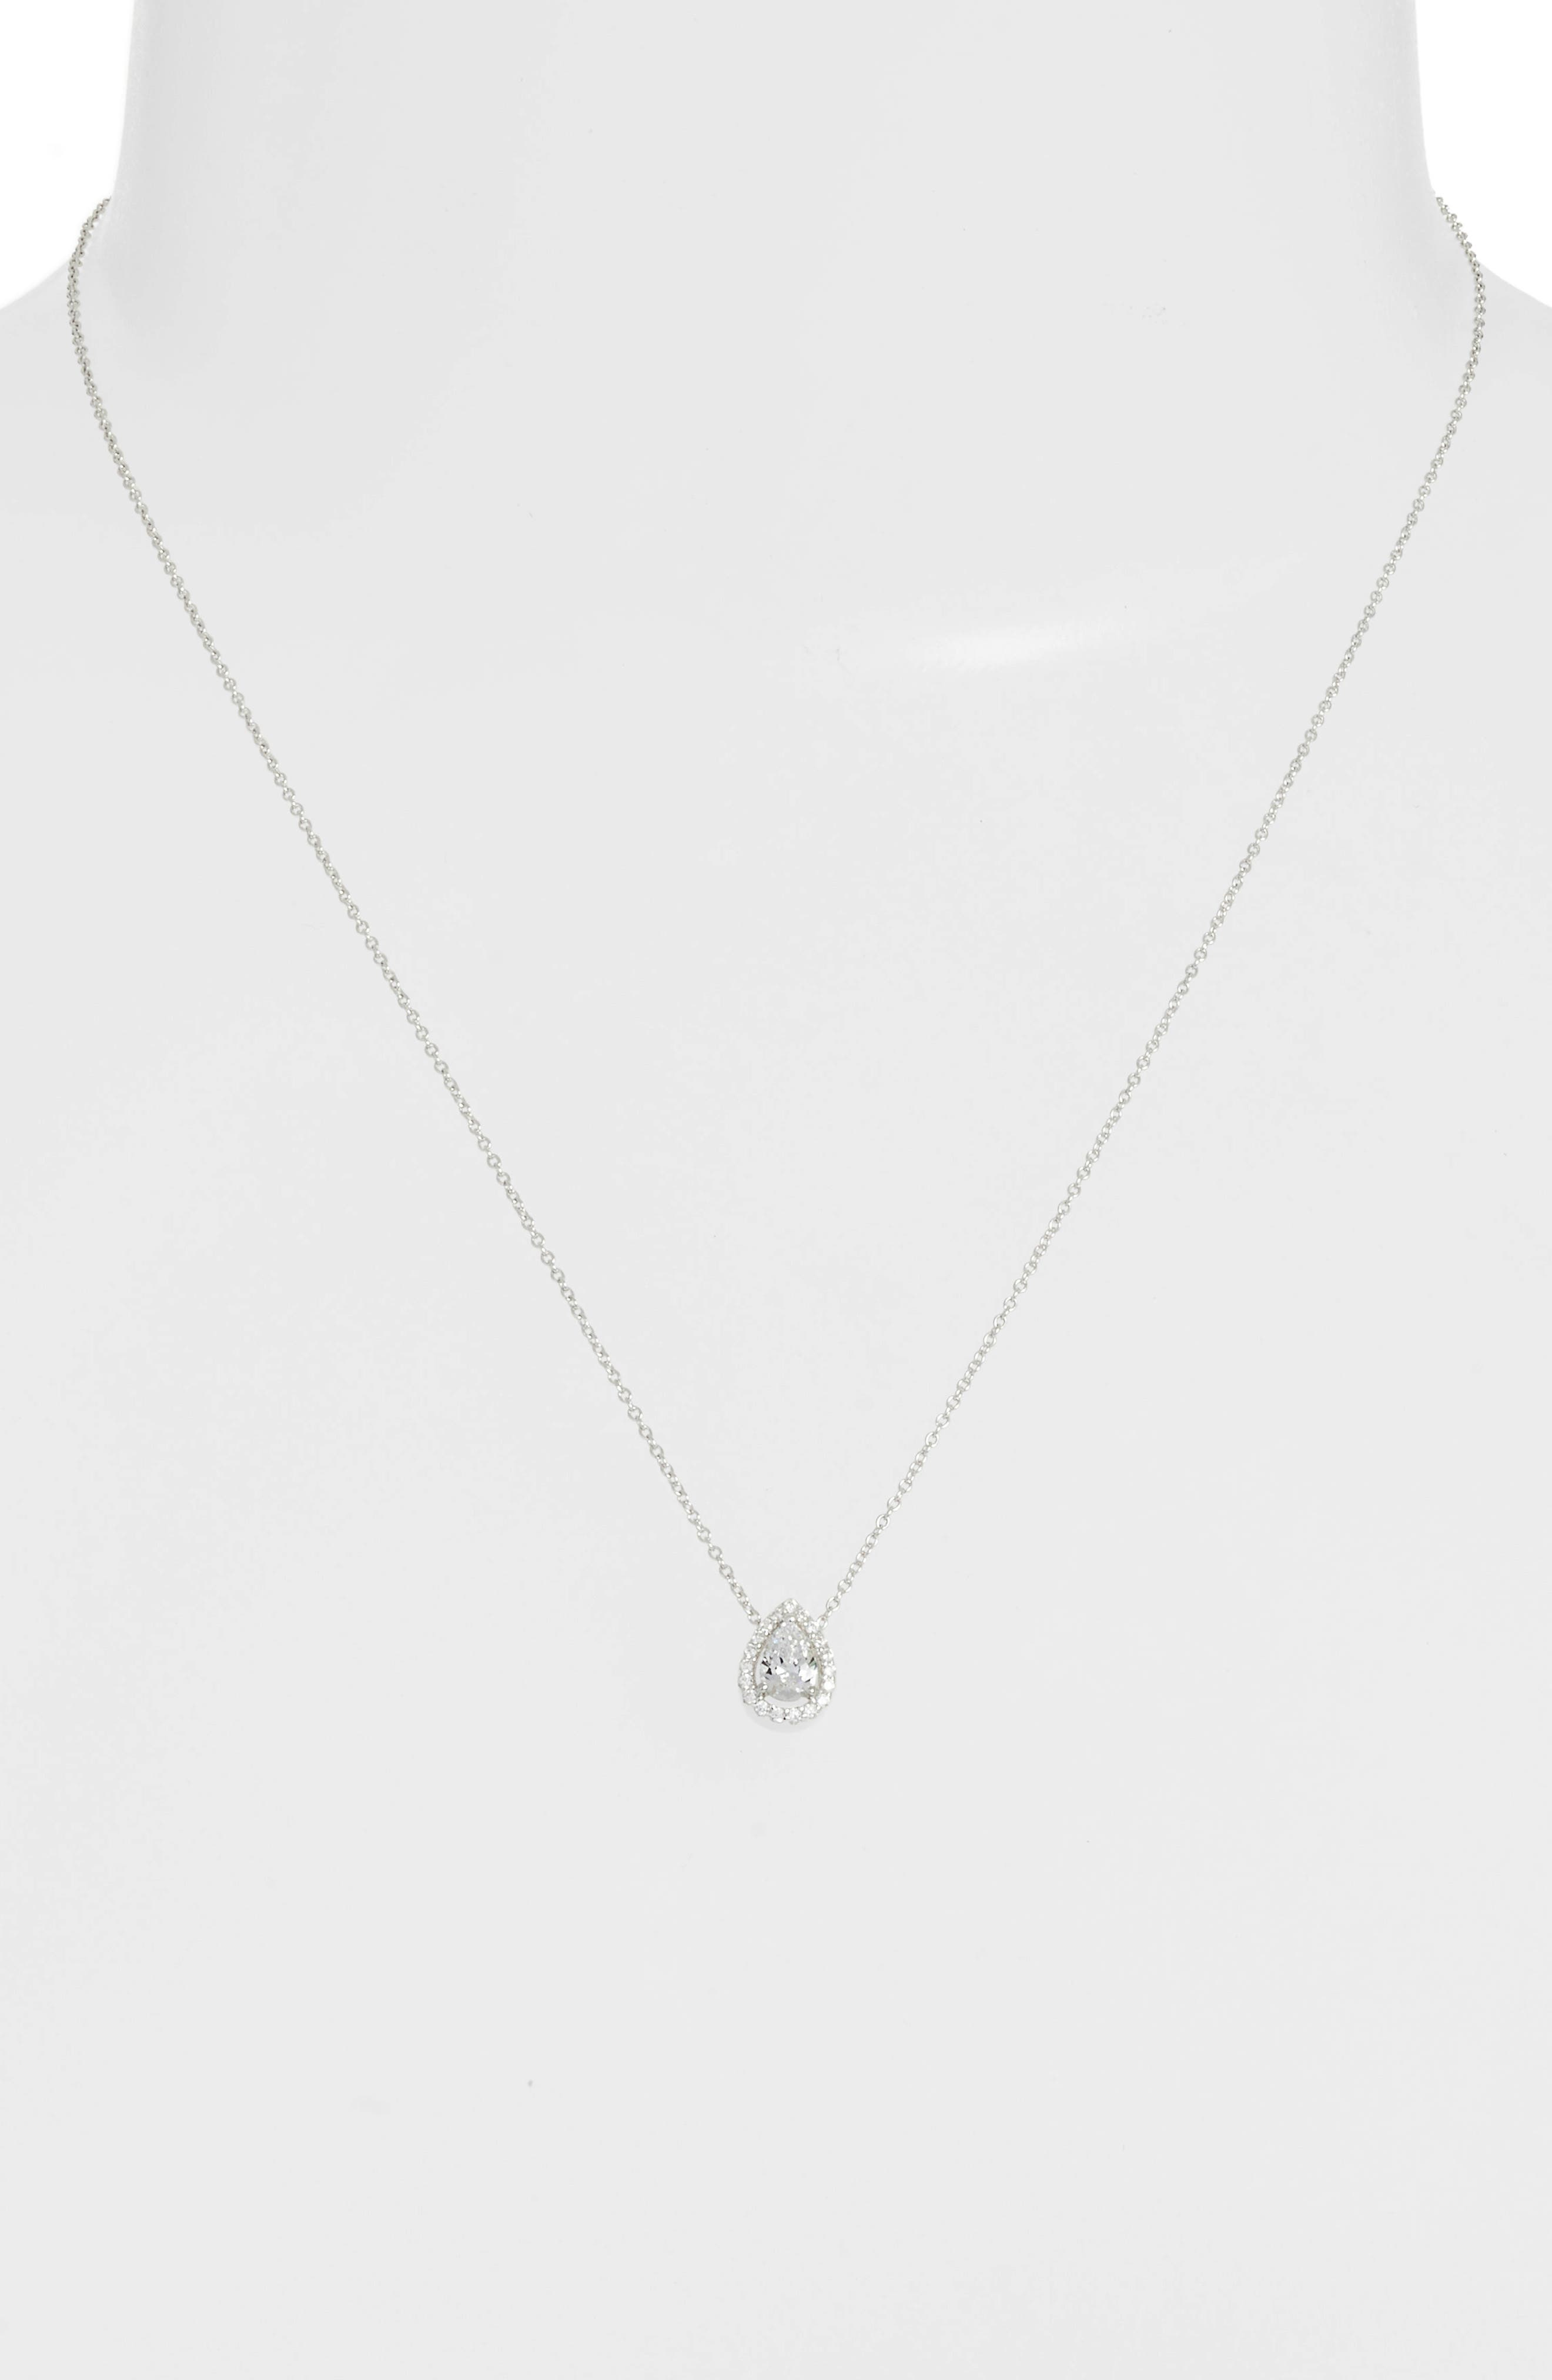 Pear Shaped Halo Necklace,                             Alternate thumbnail 2, color,                             Silver/ Clear